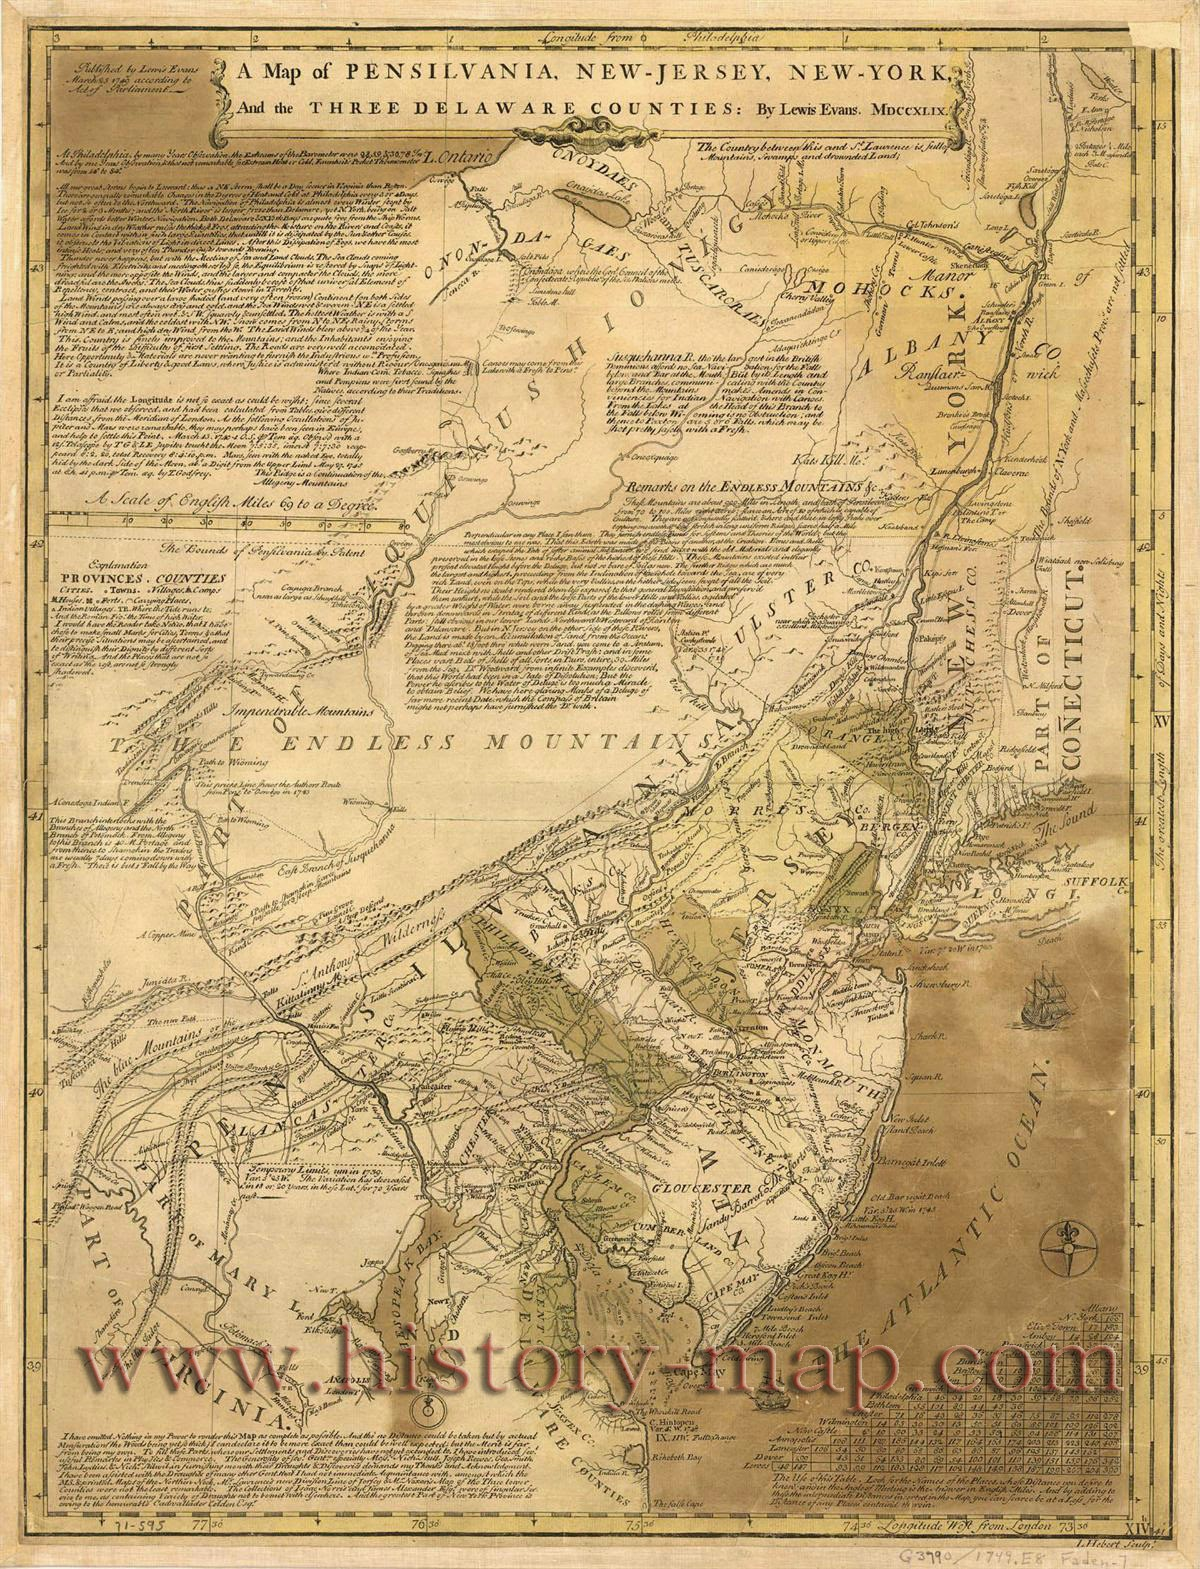 1776 notes evans 1749 map as printed at philadelphia 1749 distance table ms note 18212 prime meridian london philadelphia relief pictorial